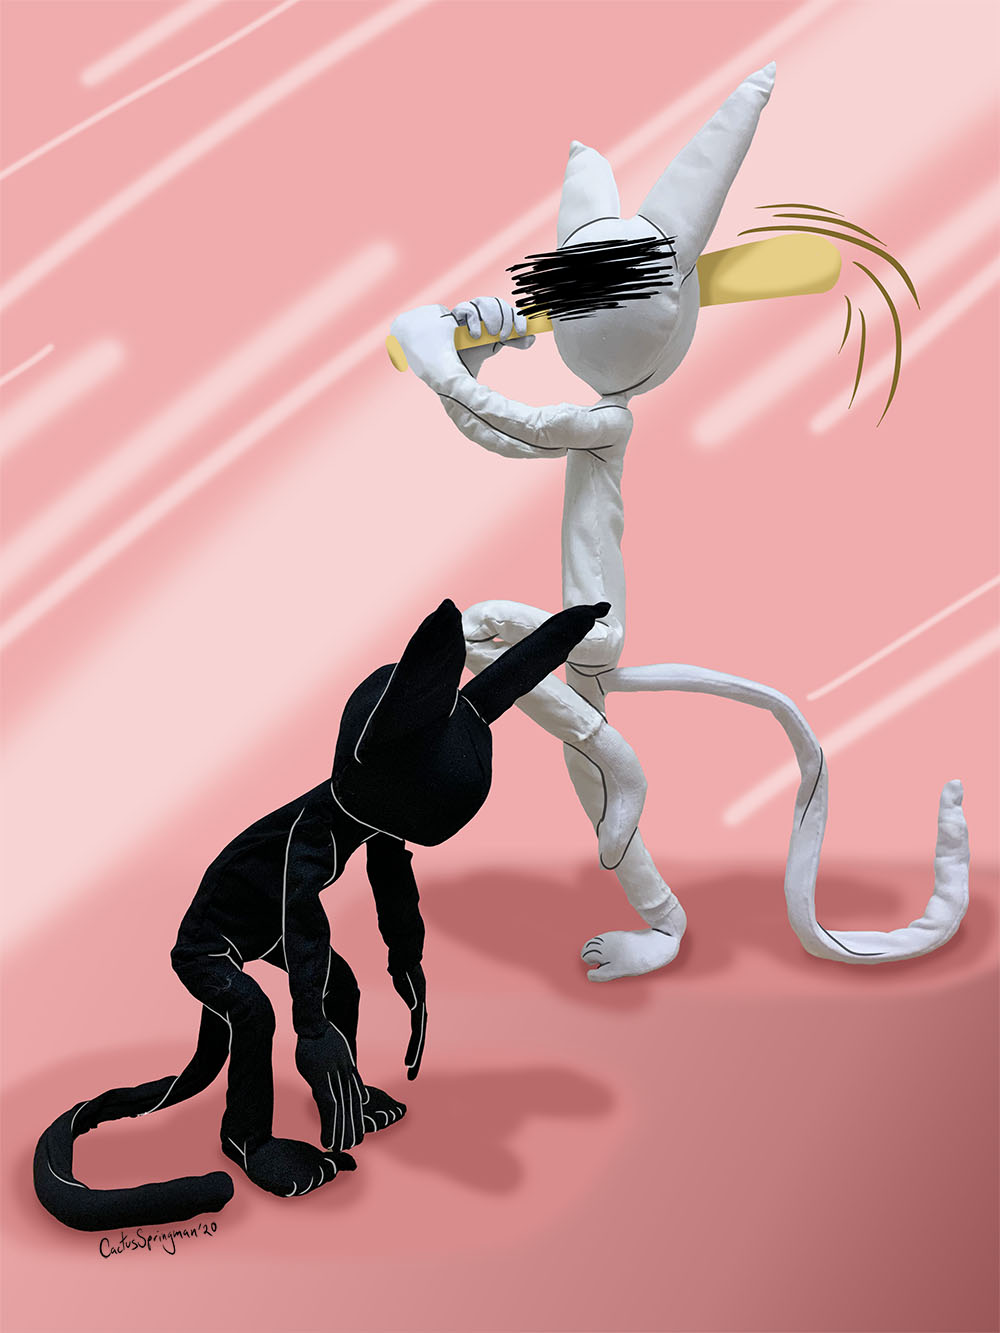 Title, Self Sabotage Brain Cats, by Cactus Springman. A photographic print of two soft sculptures, a black cat and white cat. The white cat is holding an illustrated baseball bat, about to hit the black cat, who is bending over in the foreground. The background is pink with lighter and darker shades.